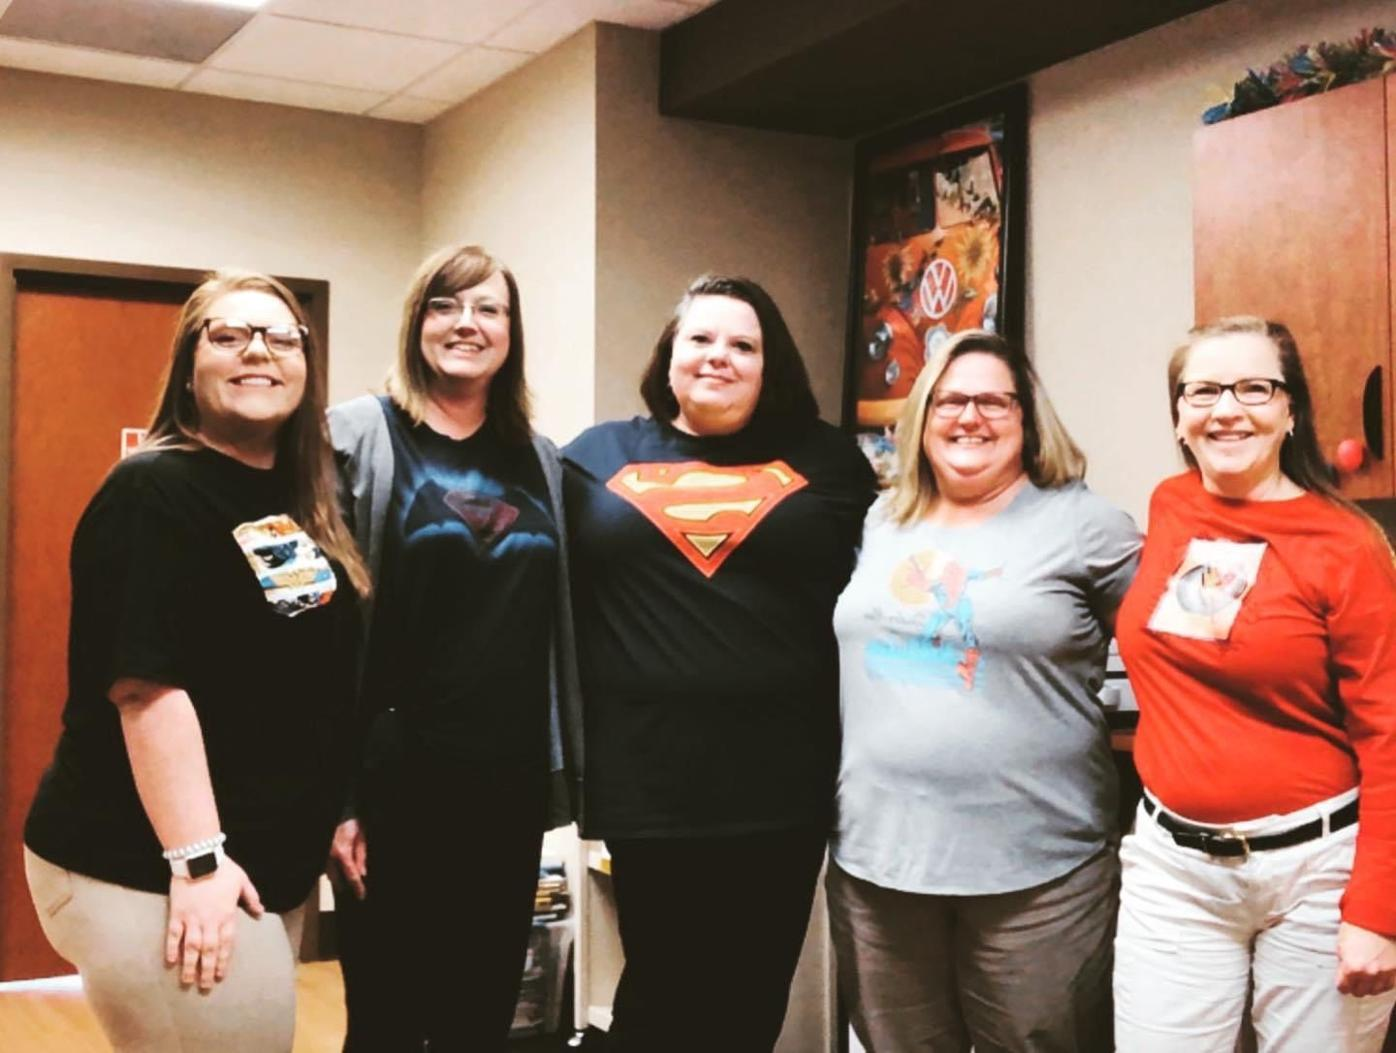 Healthcare workers at Rogersville Medical Complex brighten morale with superhero attire